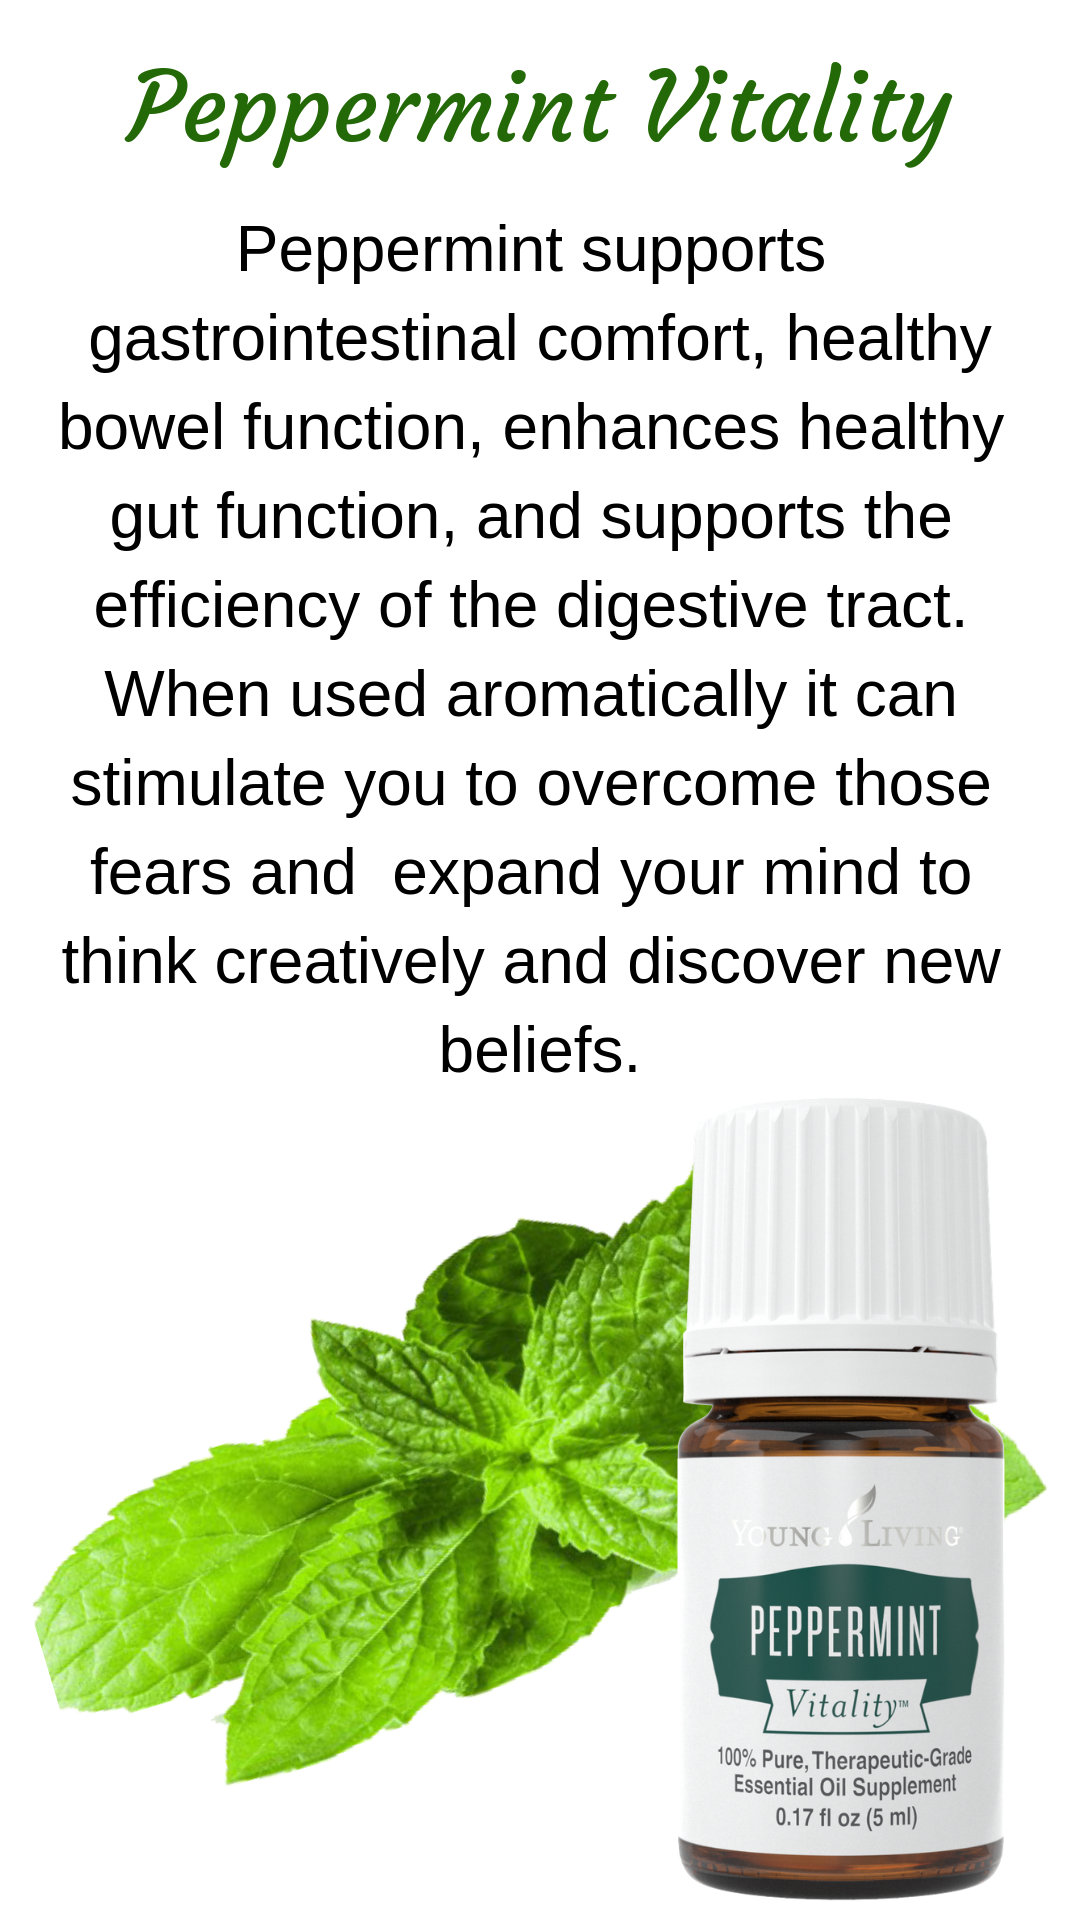 peppermint-vitality-story-card